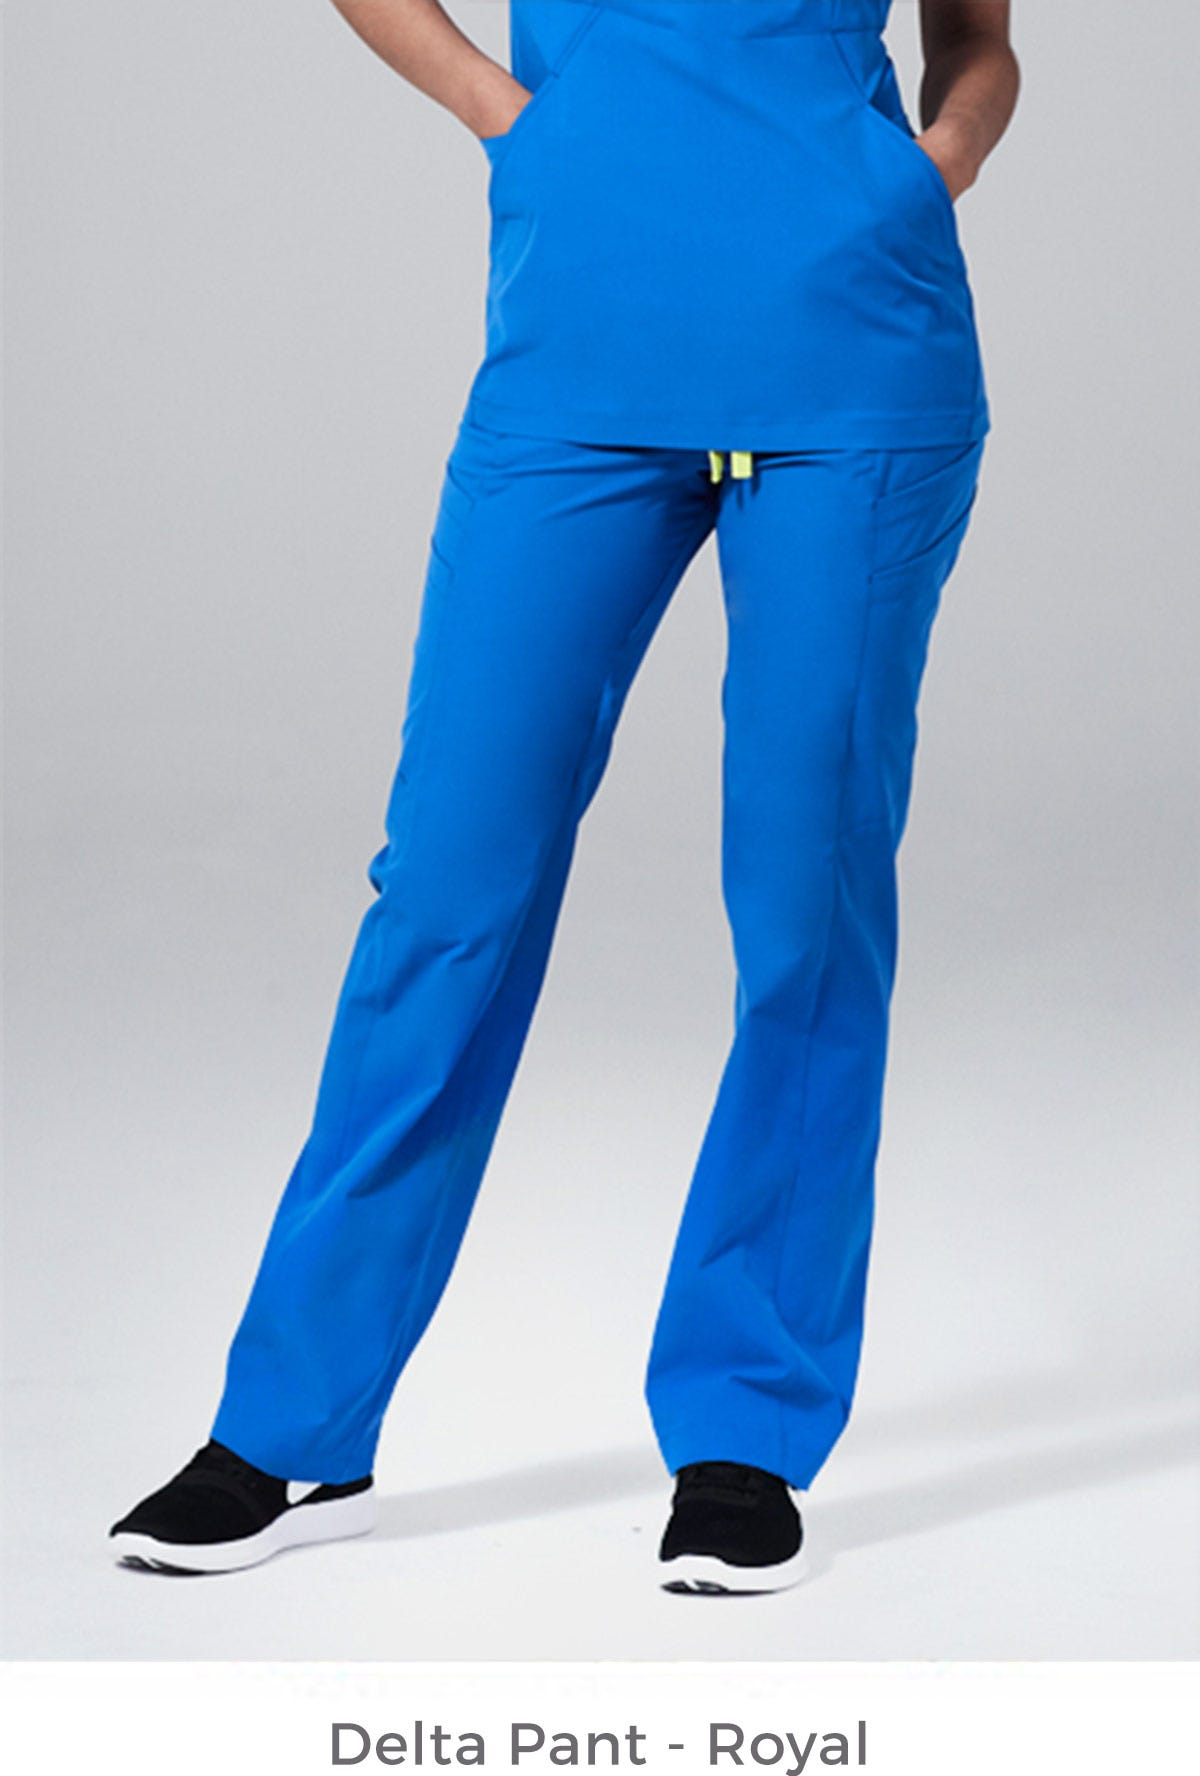 Delta scrub pants - Royal